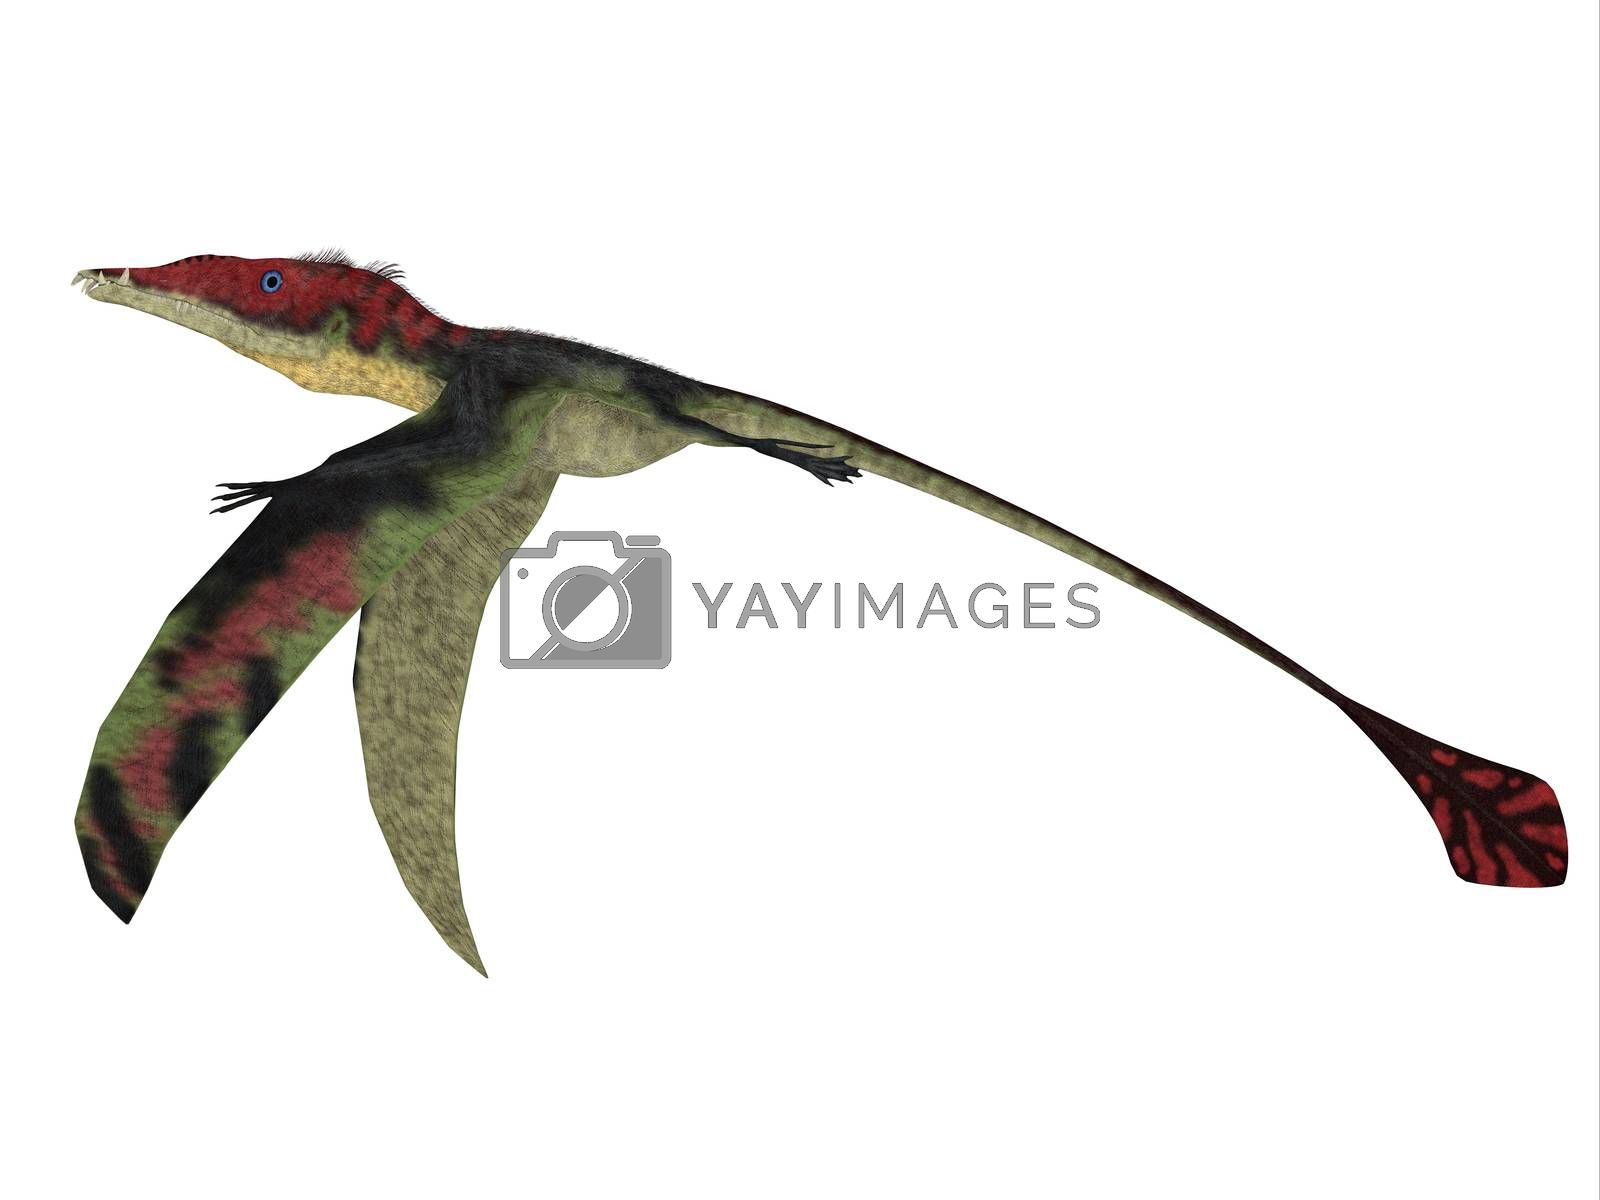 The carnivorous Eadimorphodon was a pterosaur flying reptile that lived in Italy in the Triassic Period.